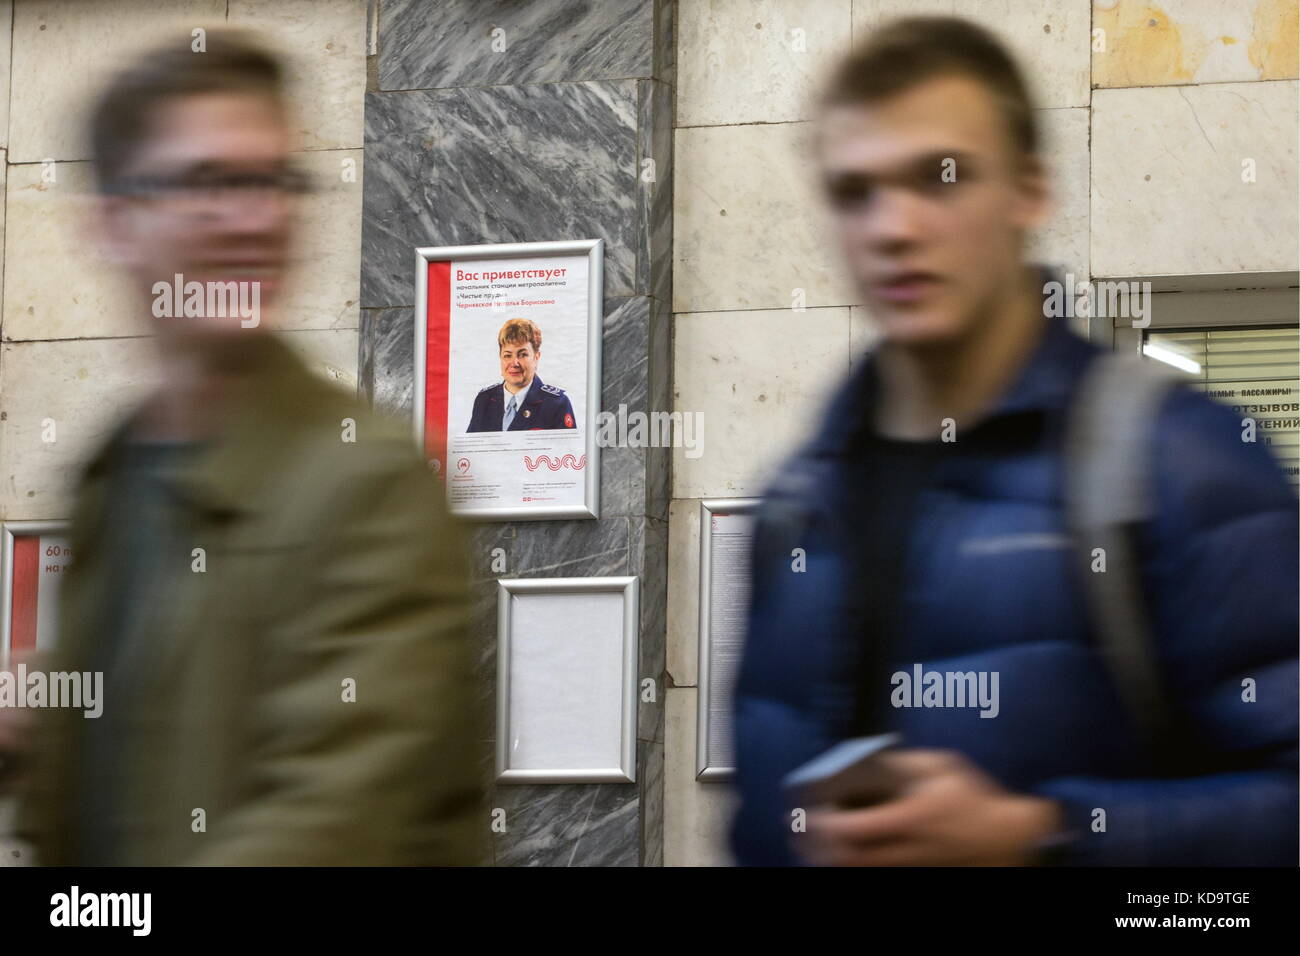 Moscow, Russia. 11th Oct, 2017. Commuters at Chistye Prudy station on Line 1 of the Moscow Underground; seen behind - Stock Image